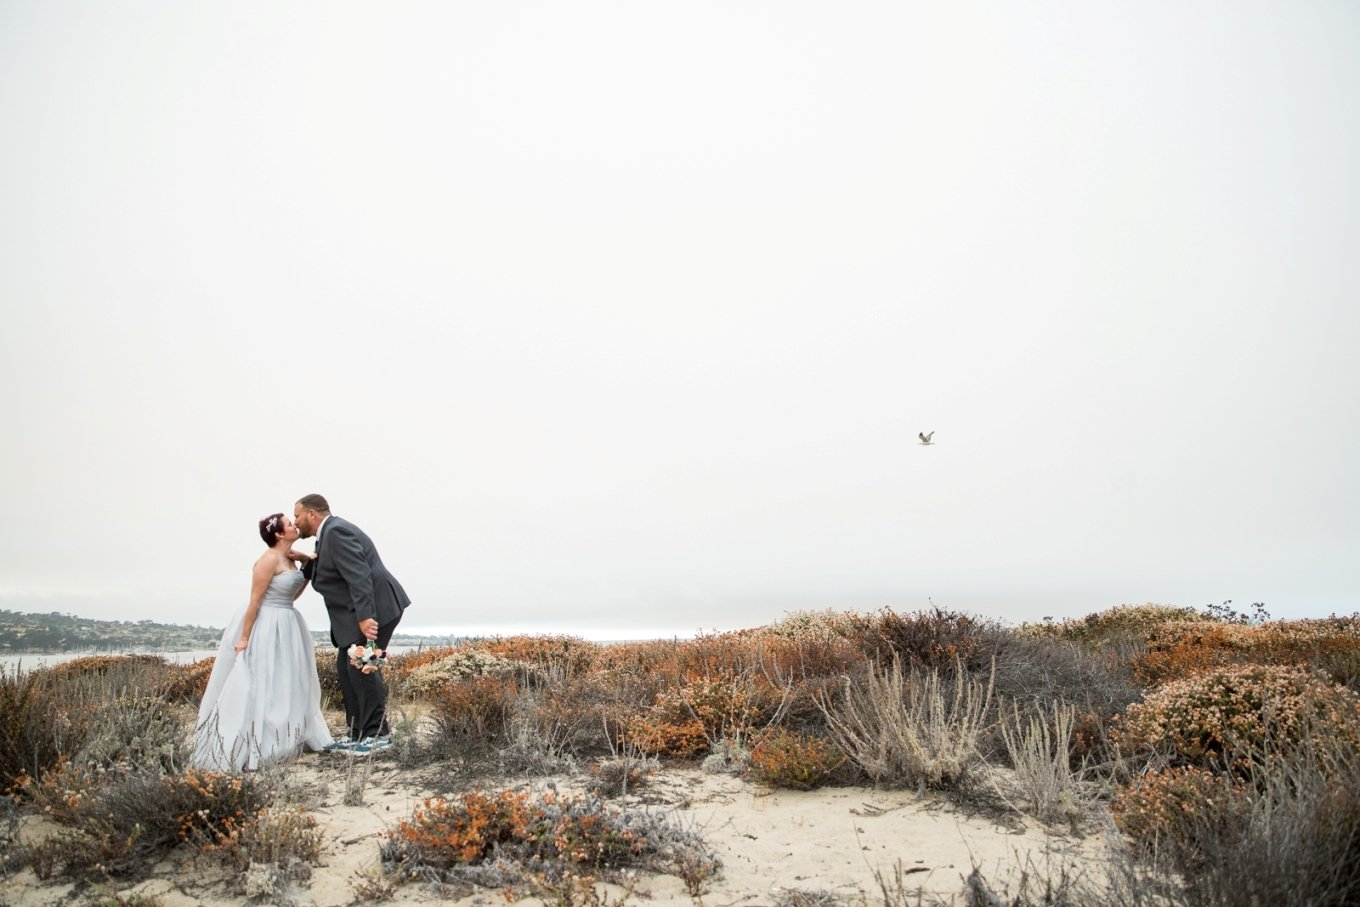 sharing a kiss after eloping on the beach in Monterey